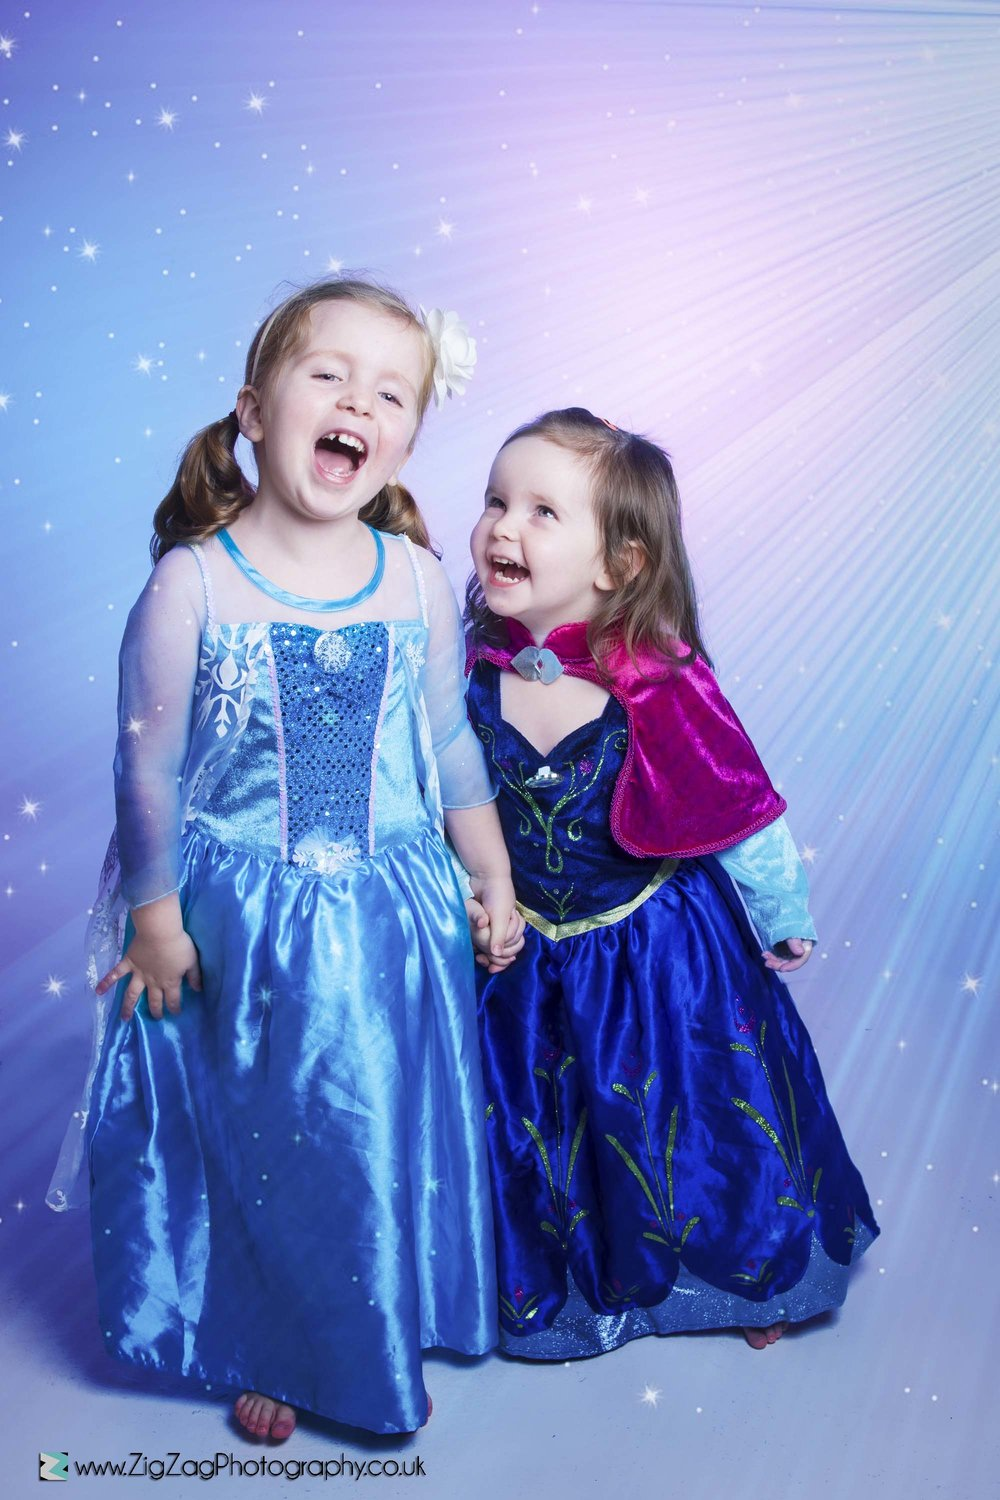 photography-shoot-leicester-photoshoot-studio-frozen-princess-disney-costume-ideas-elsa-pretty-blue-sisters-girls-children.jpg